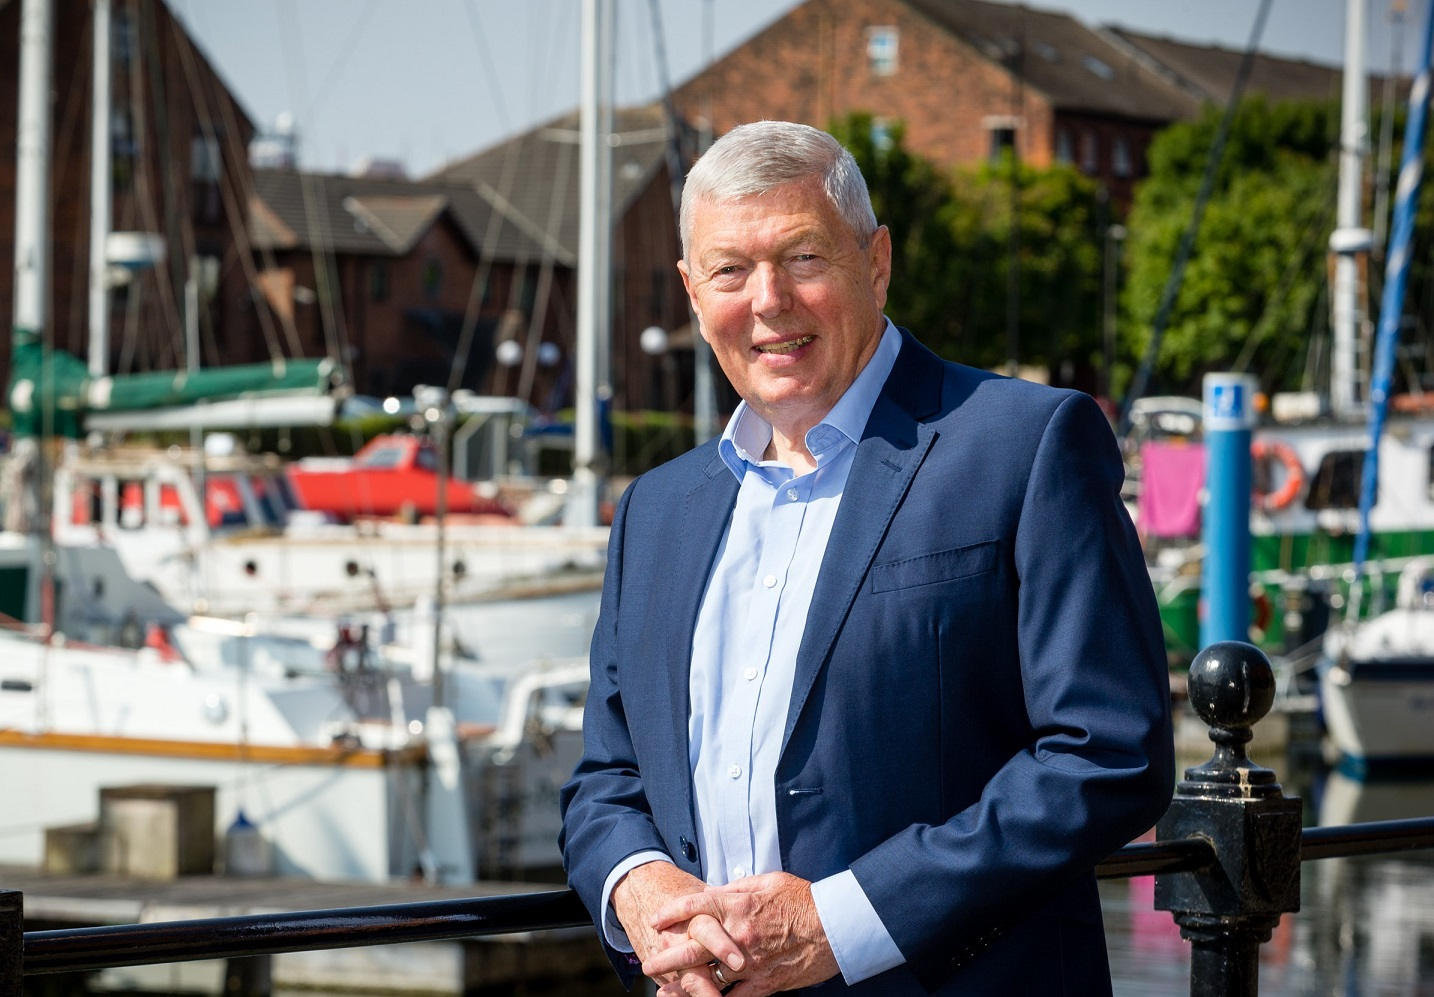 Alan Johnson, the former Hull West and Hessle MP, is patron of the Viola Trust.